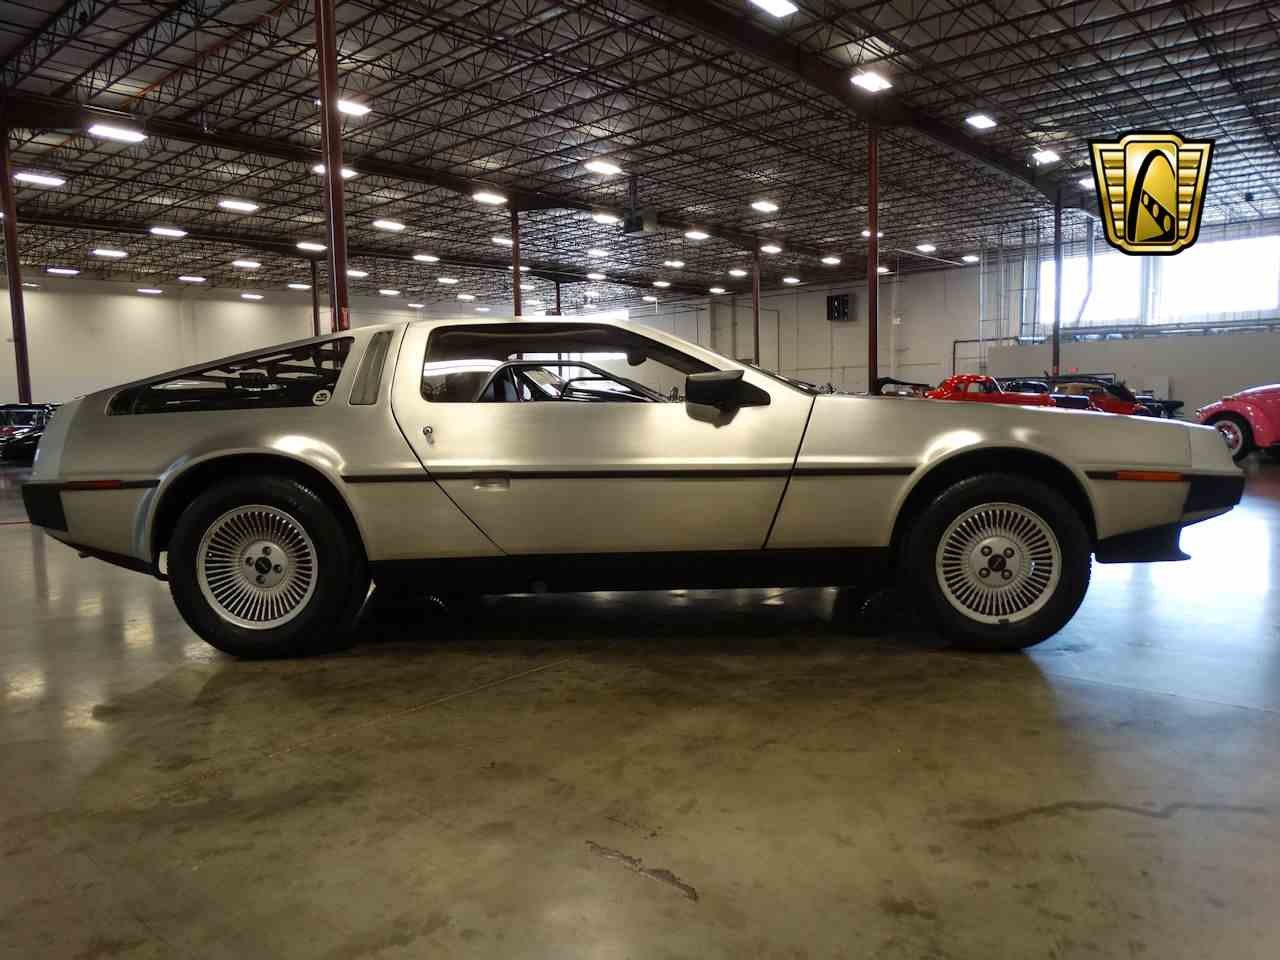 Large Picture of '81 DeLorean DMC-12 located in Tennessee Offered by Gateway Classic Cars - Nashville - M2L4